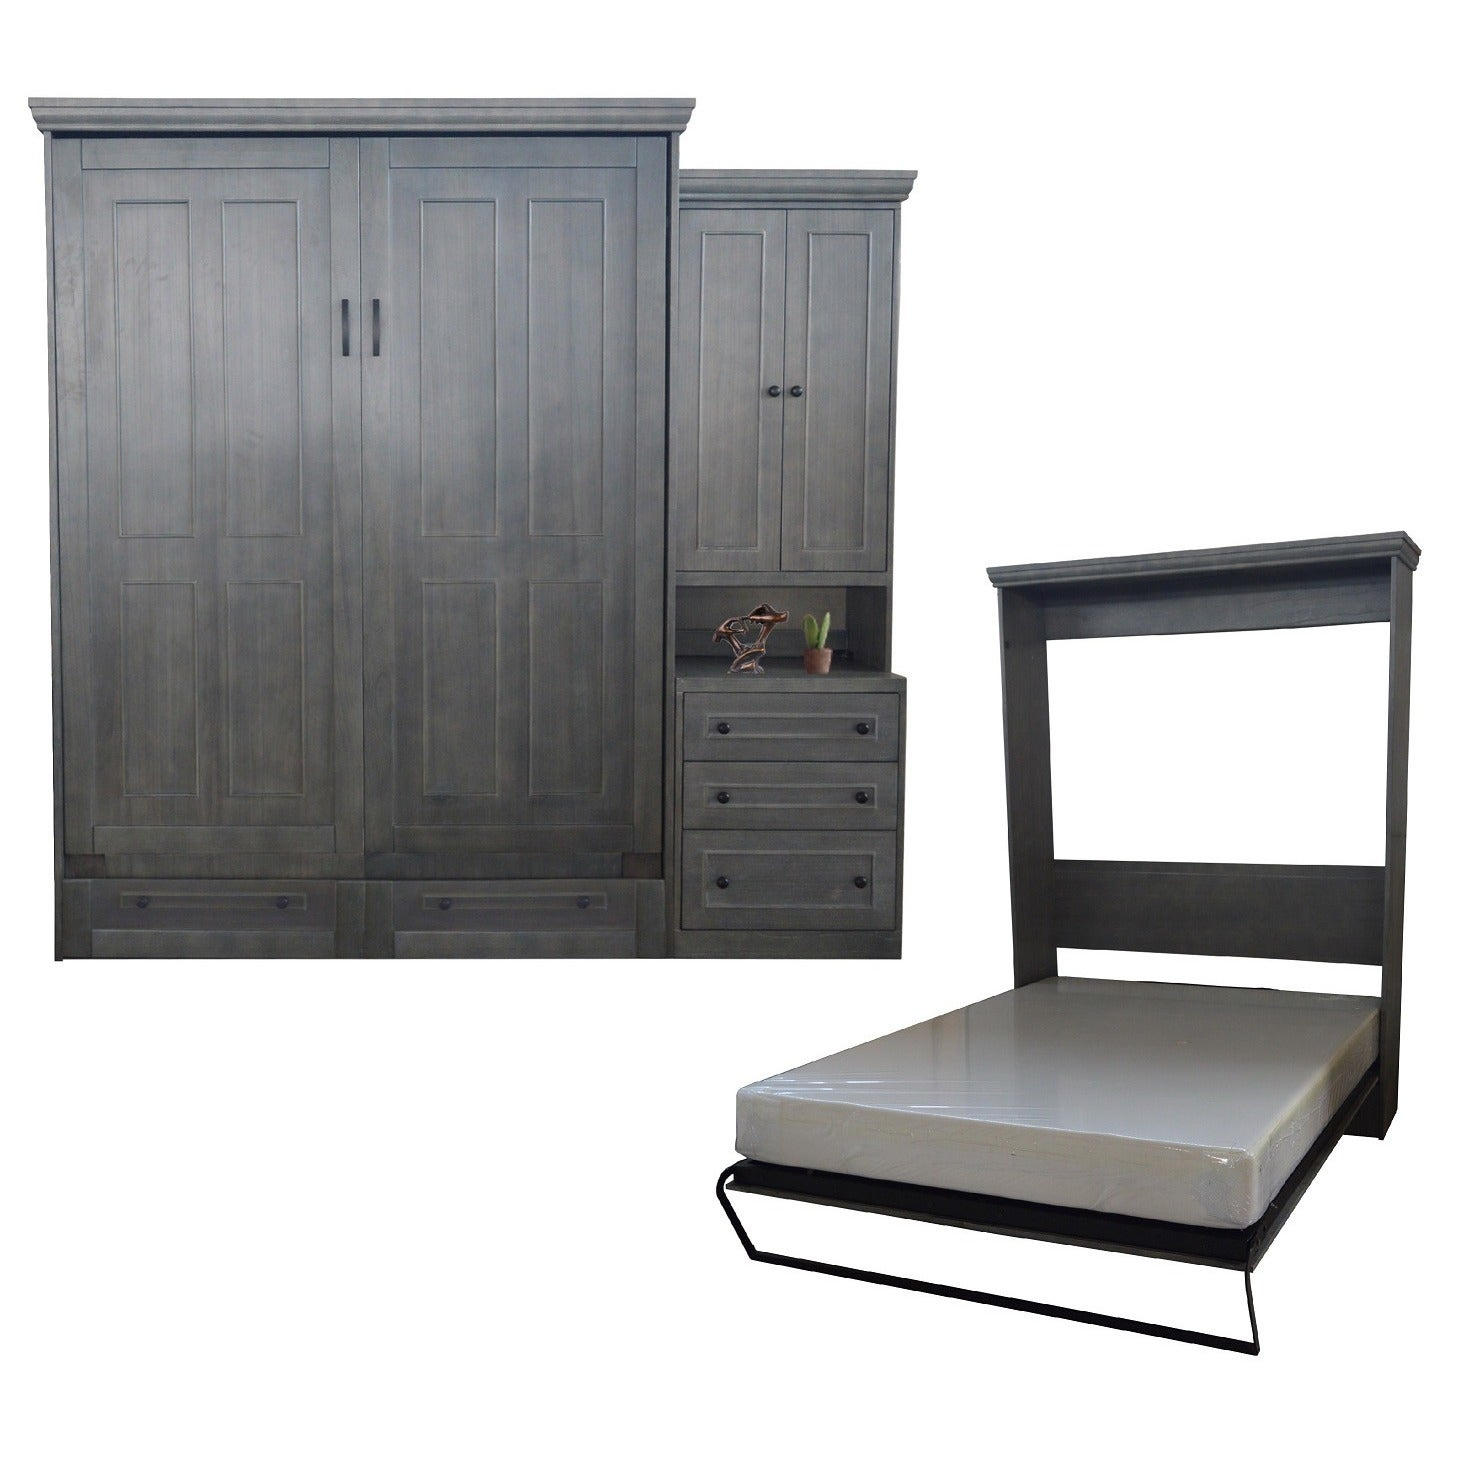 bed sierra glaze zoom wallbeds with autumn finish black rustic size style wilding murphy murphybed cherry queen haze